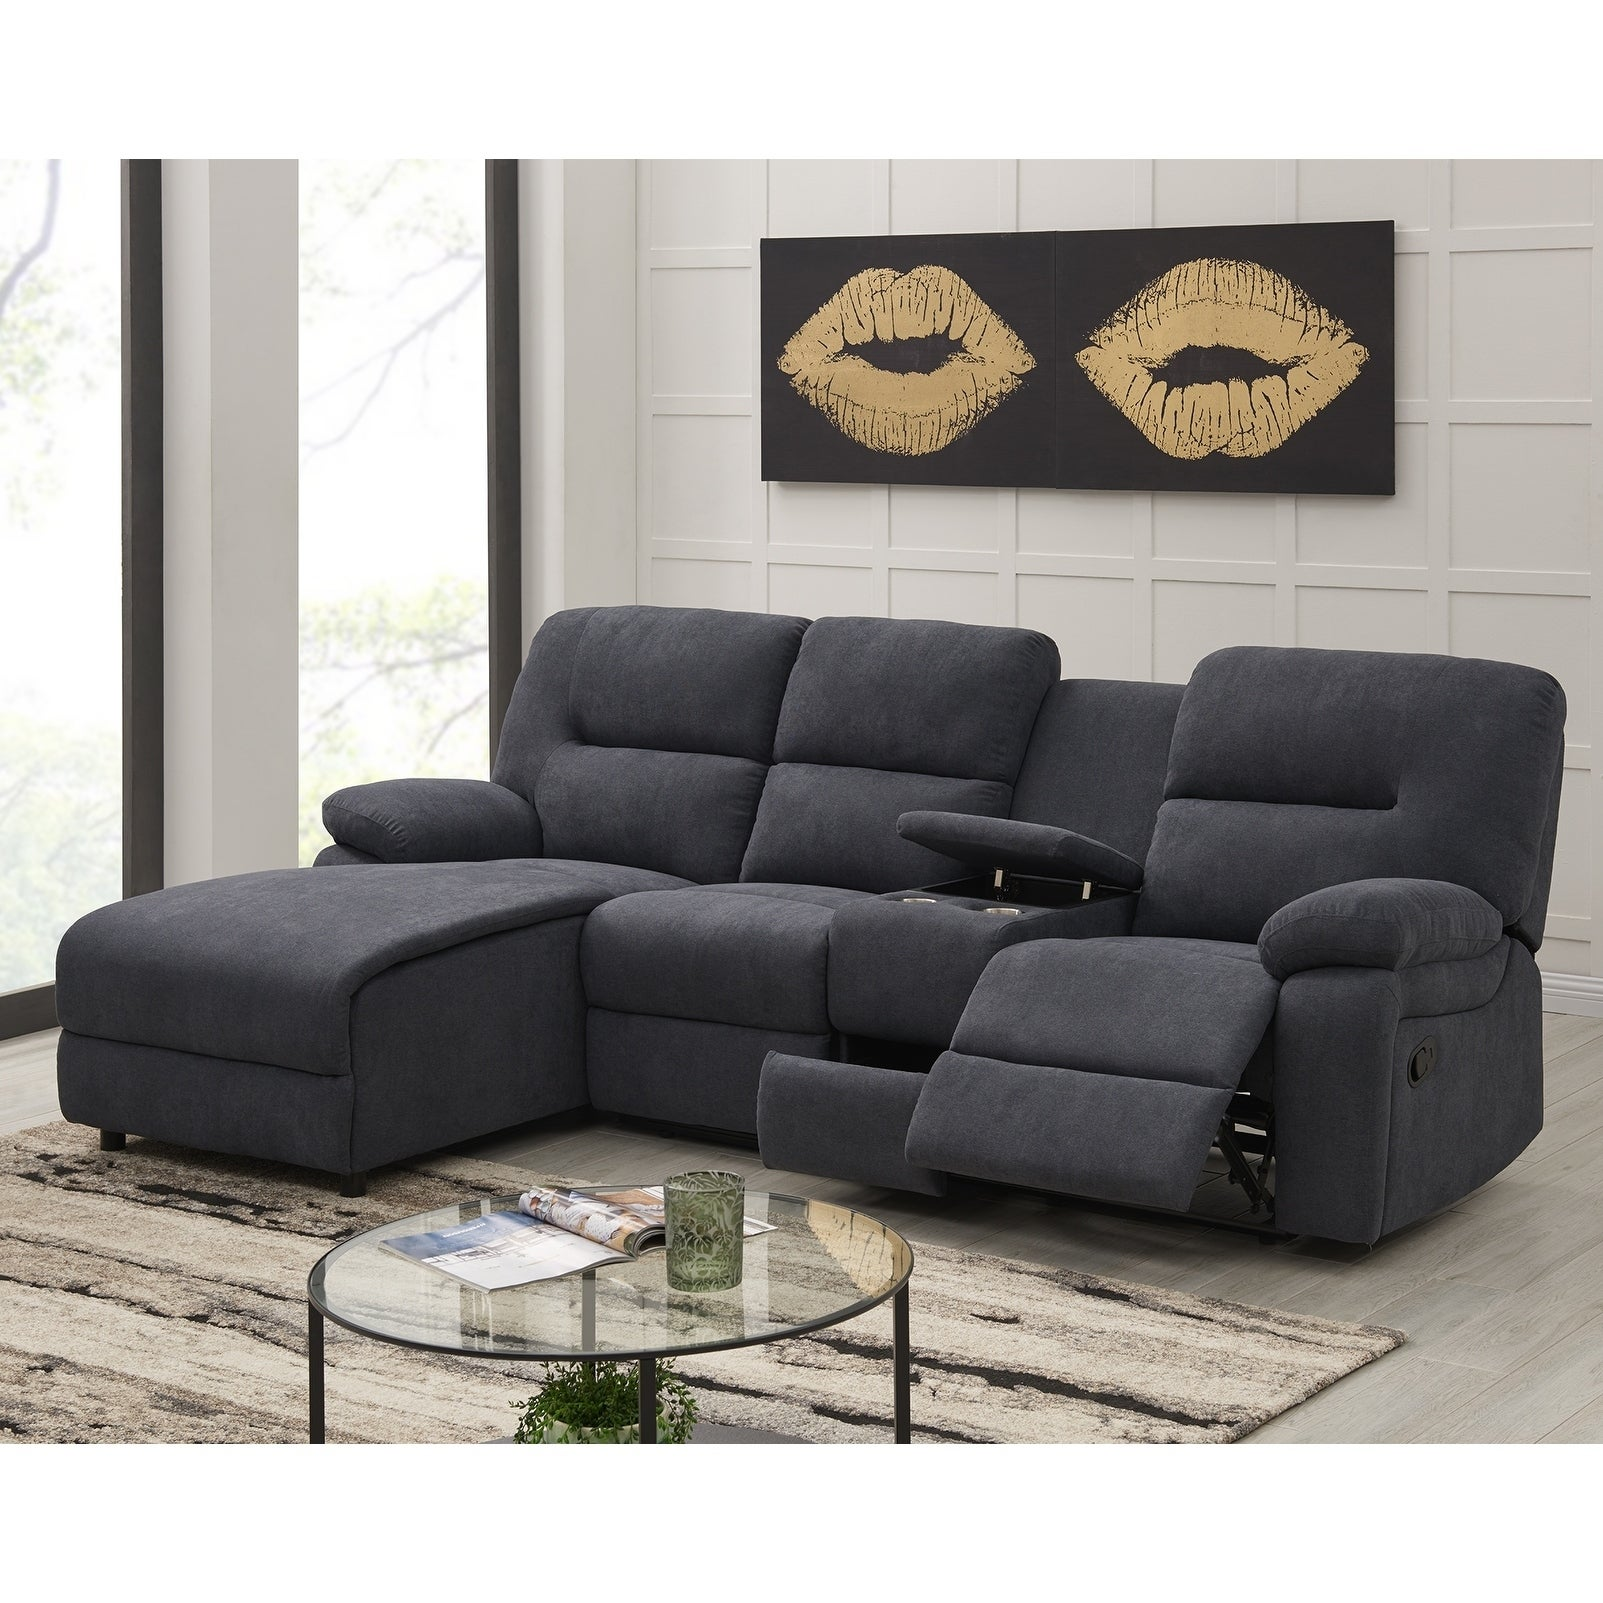 Buy Microfiber Sectional Sofas Online at Overstock | Our ...